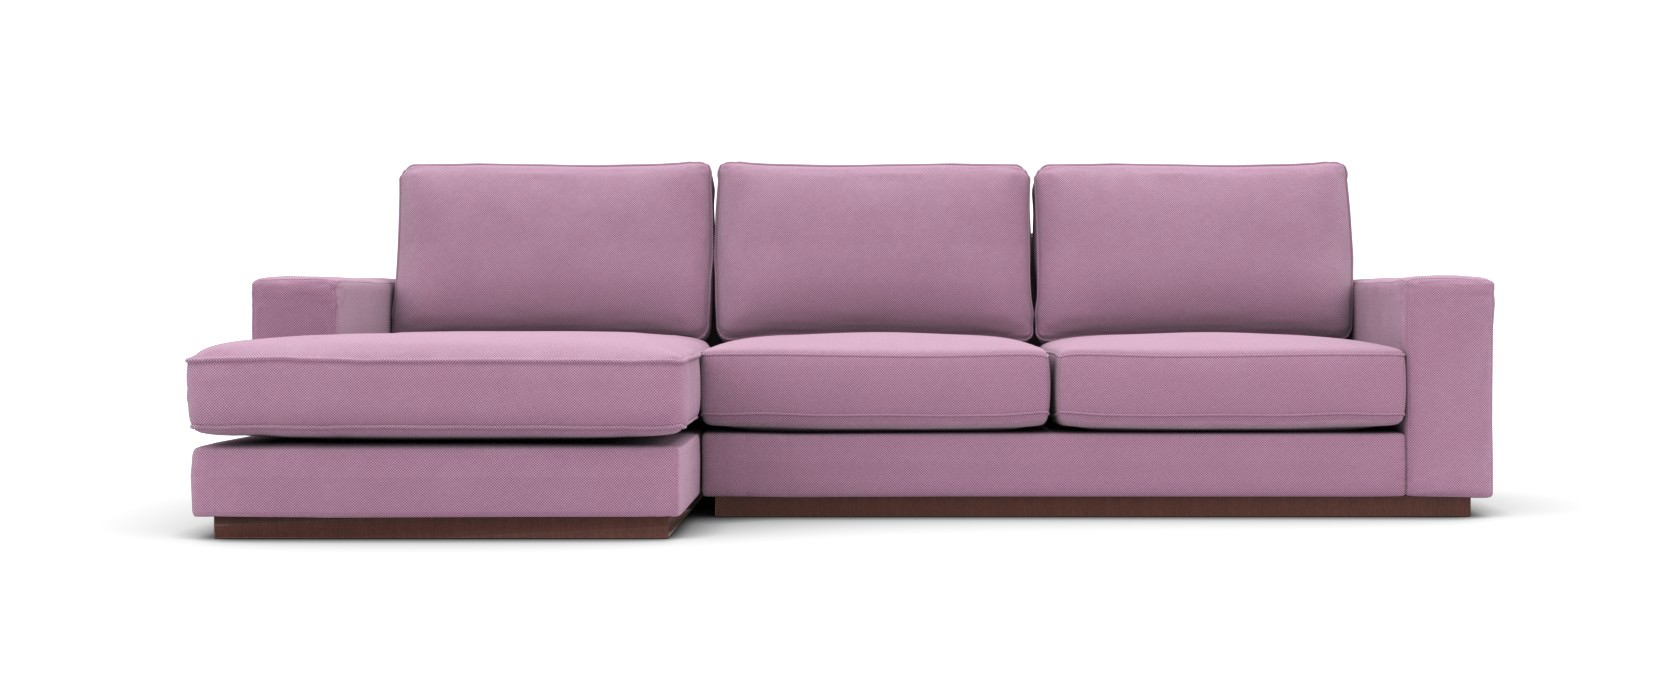 Sofa mit Chaiselongue Milano Lounge